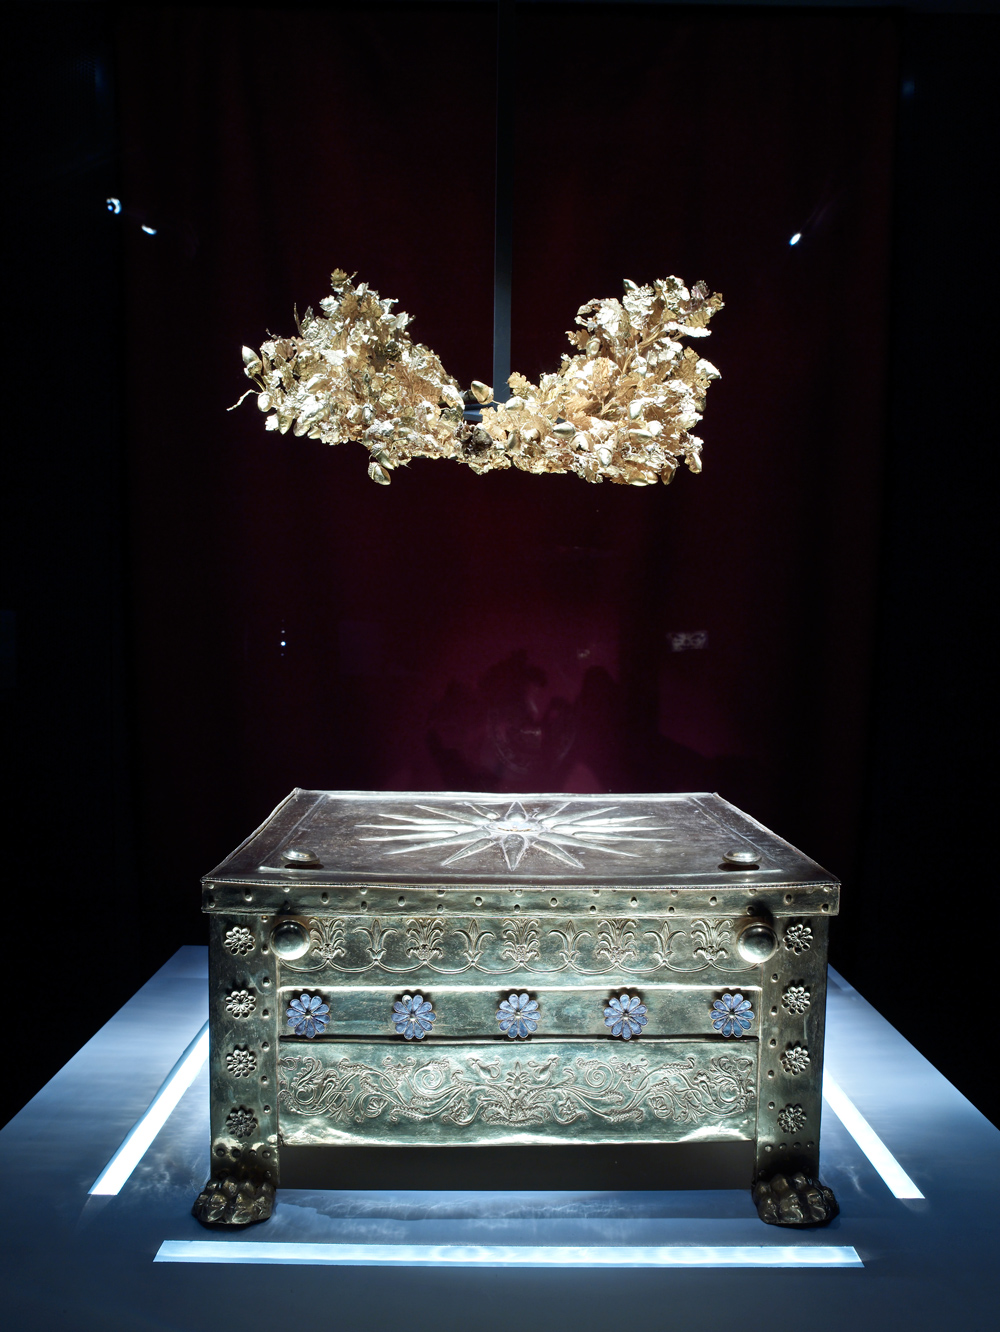 Larnaka and crown - where the bones of the king lay - found in the tomb